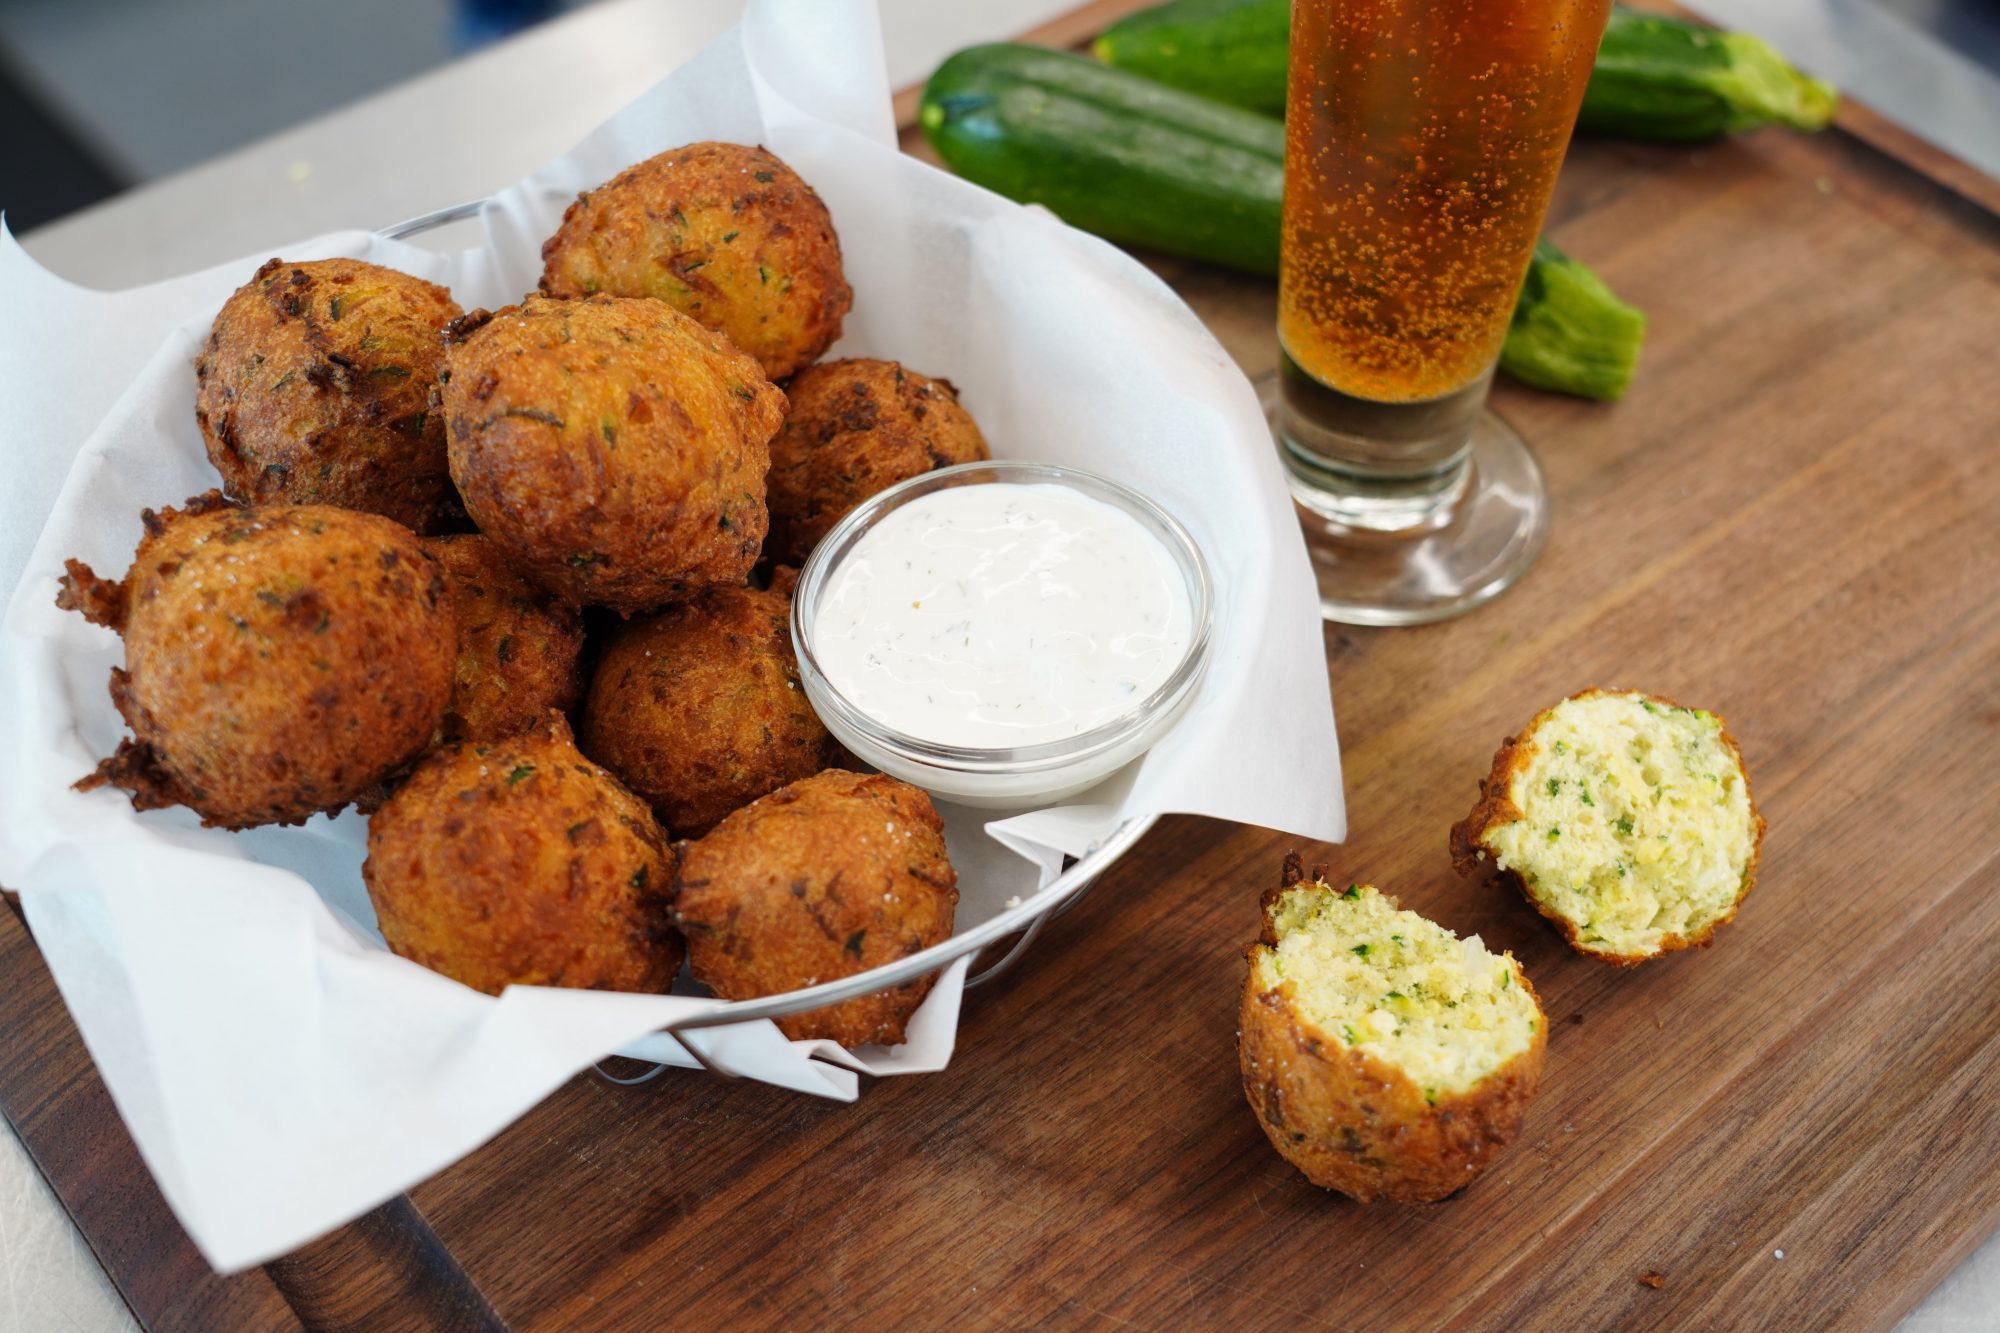 bowl of fried Zucchini Puffs recipe with ranch dressing dipping sauce and a glass of beer